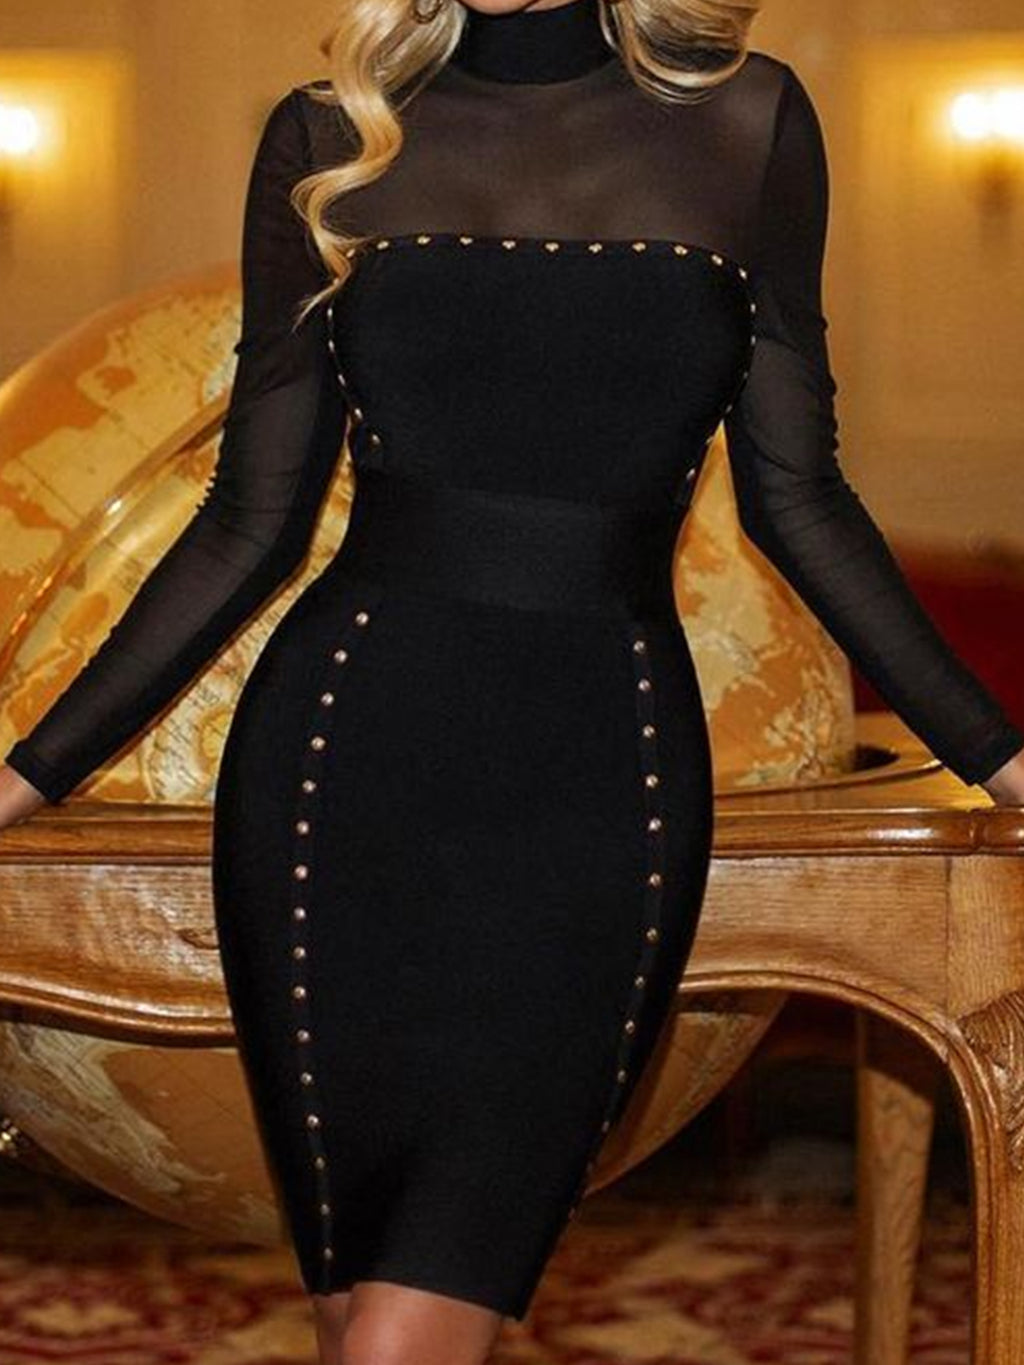 Black Sexy Plus Size Evening Gowns Mesh Overlay Long Sleeve Bodycon Dresses Rikkishop